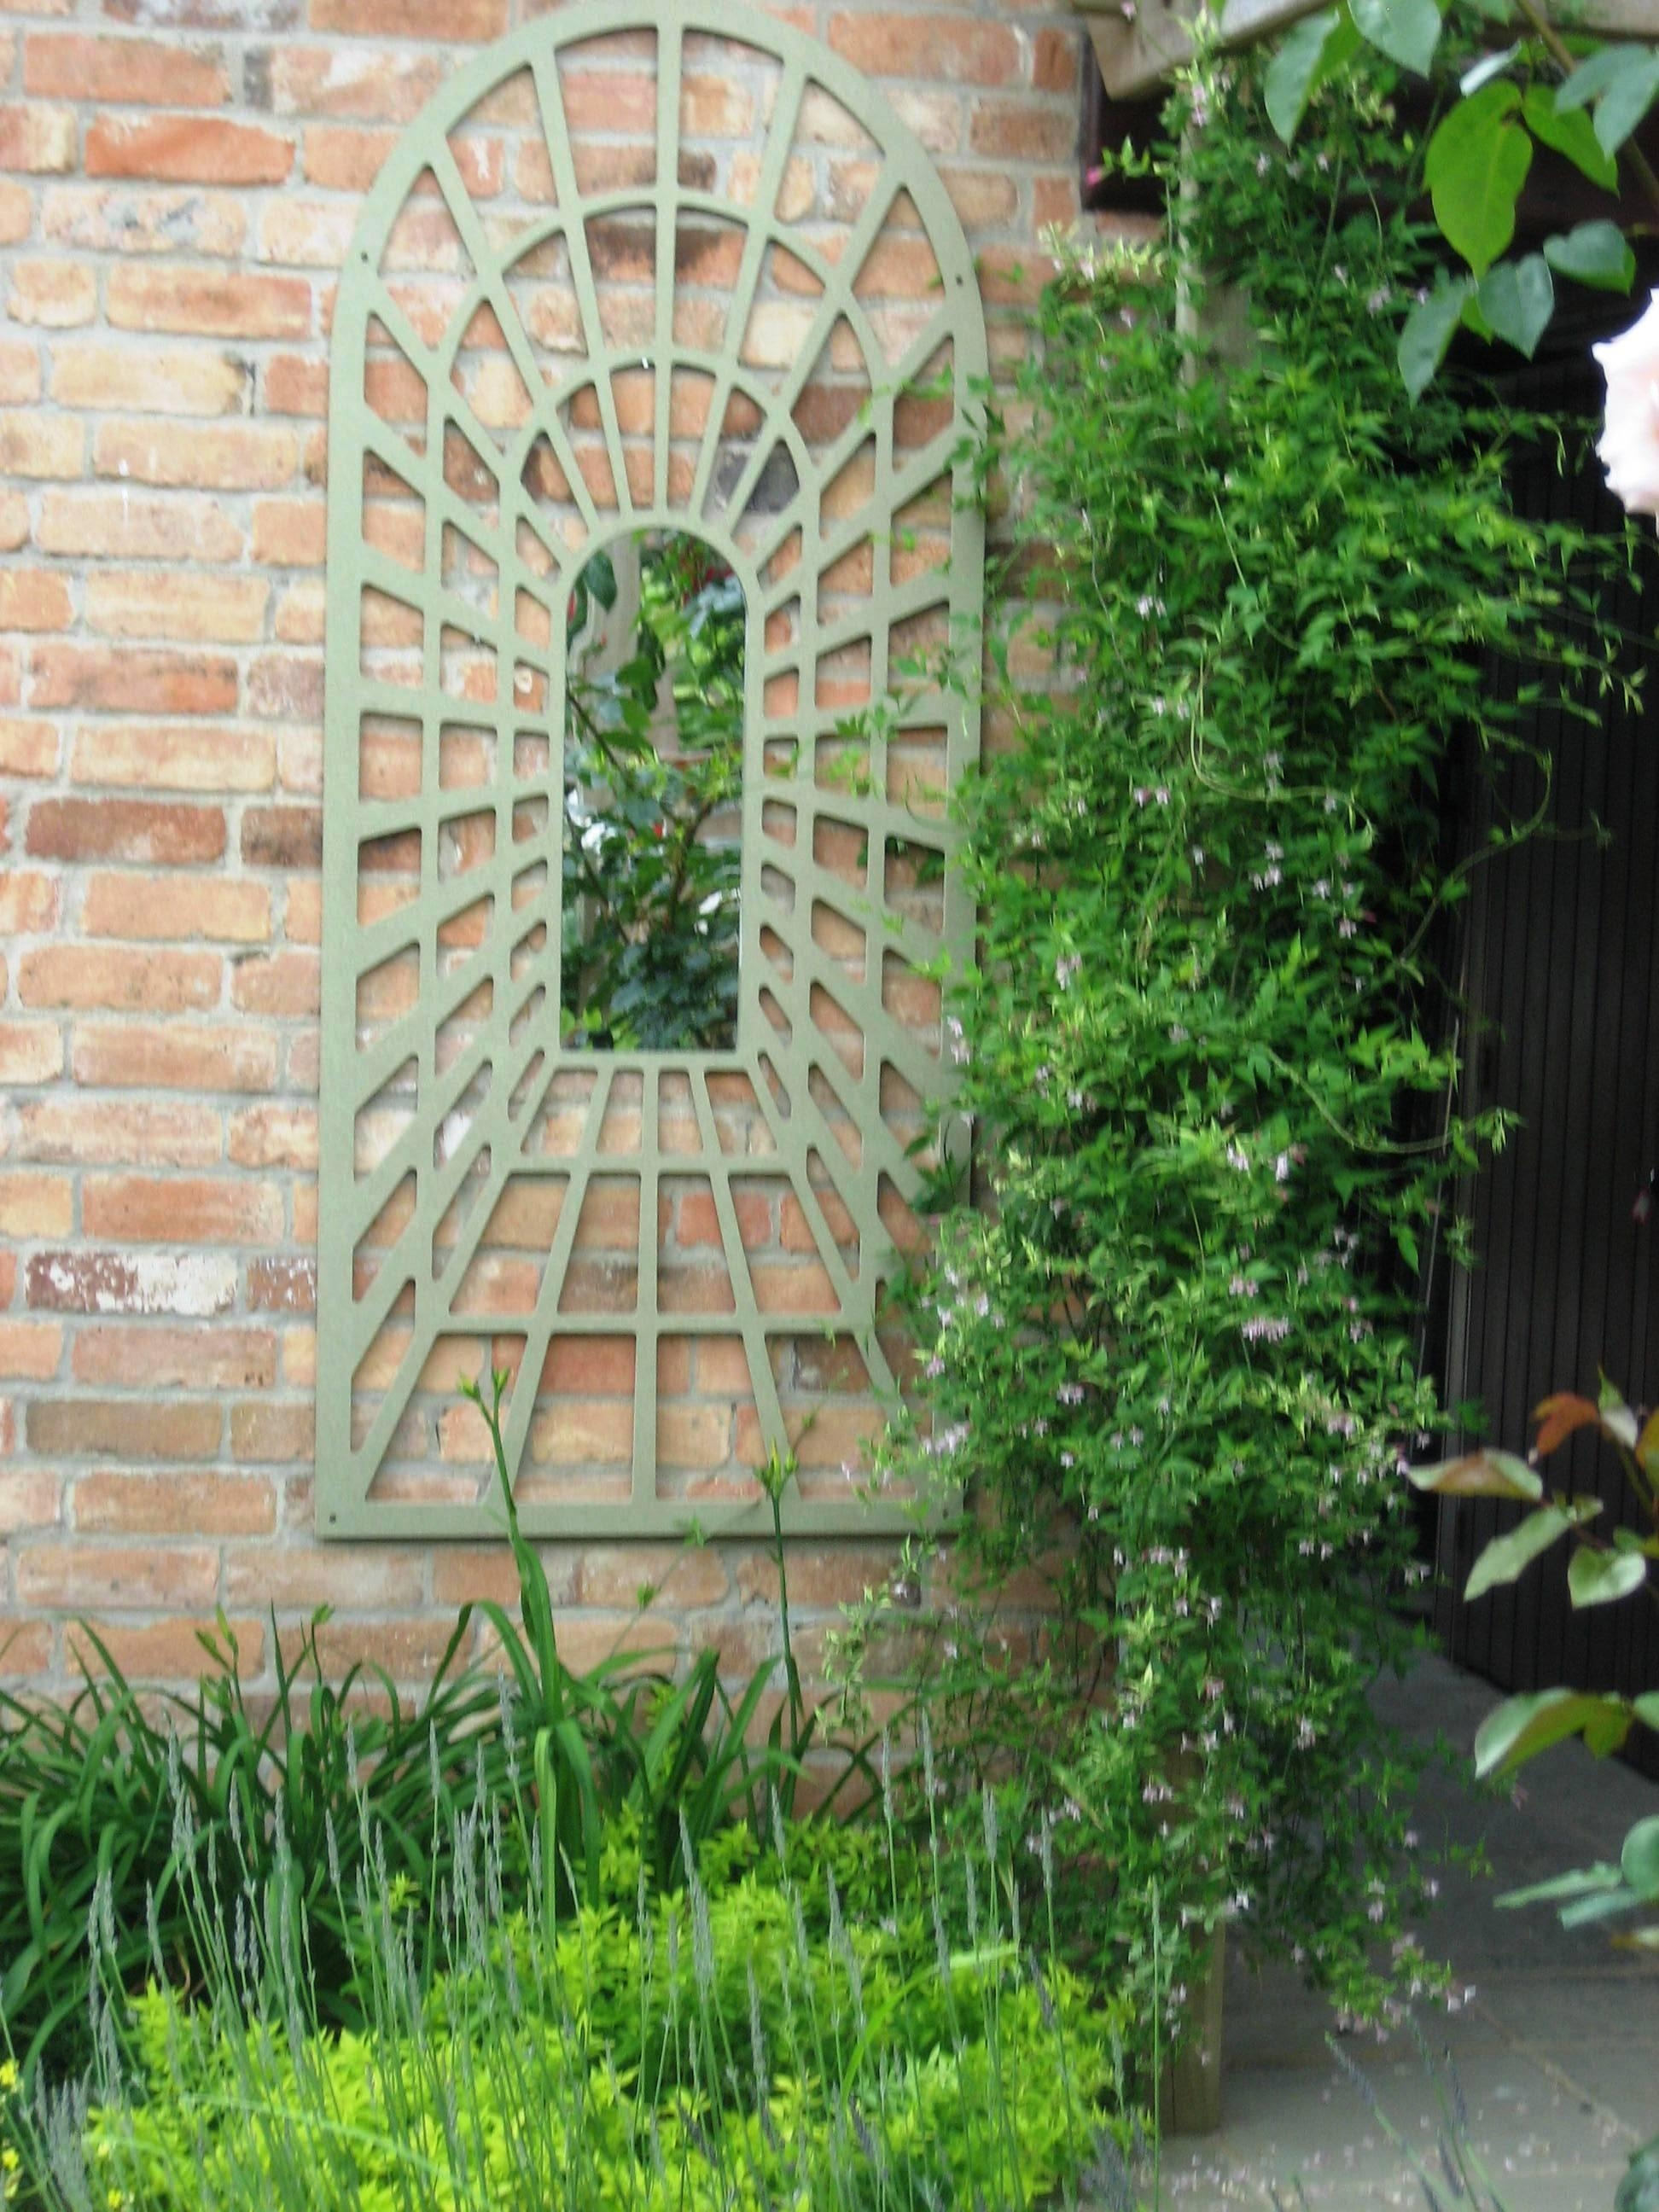 Gothic Arch Outdoor Mirror | Vanity Decoration With Regard To Gothic Garden Mirrors (Image 12 of 20)